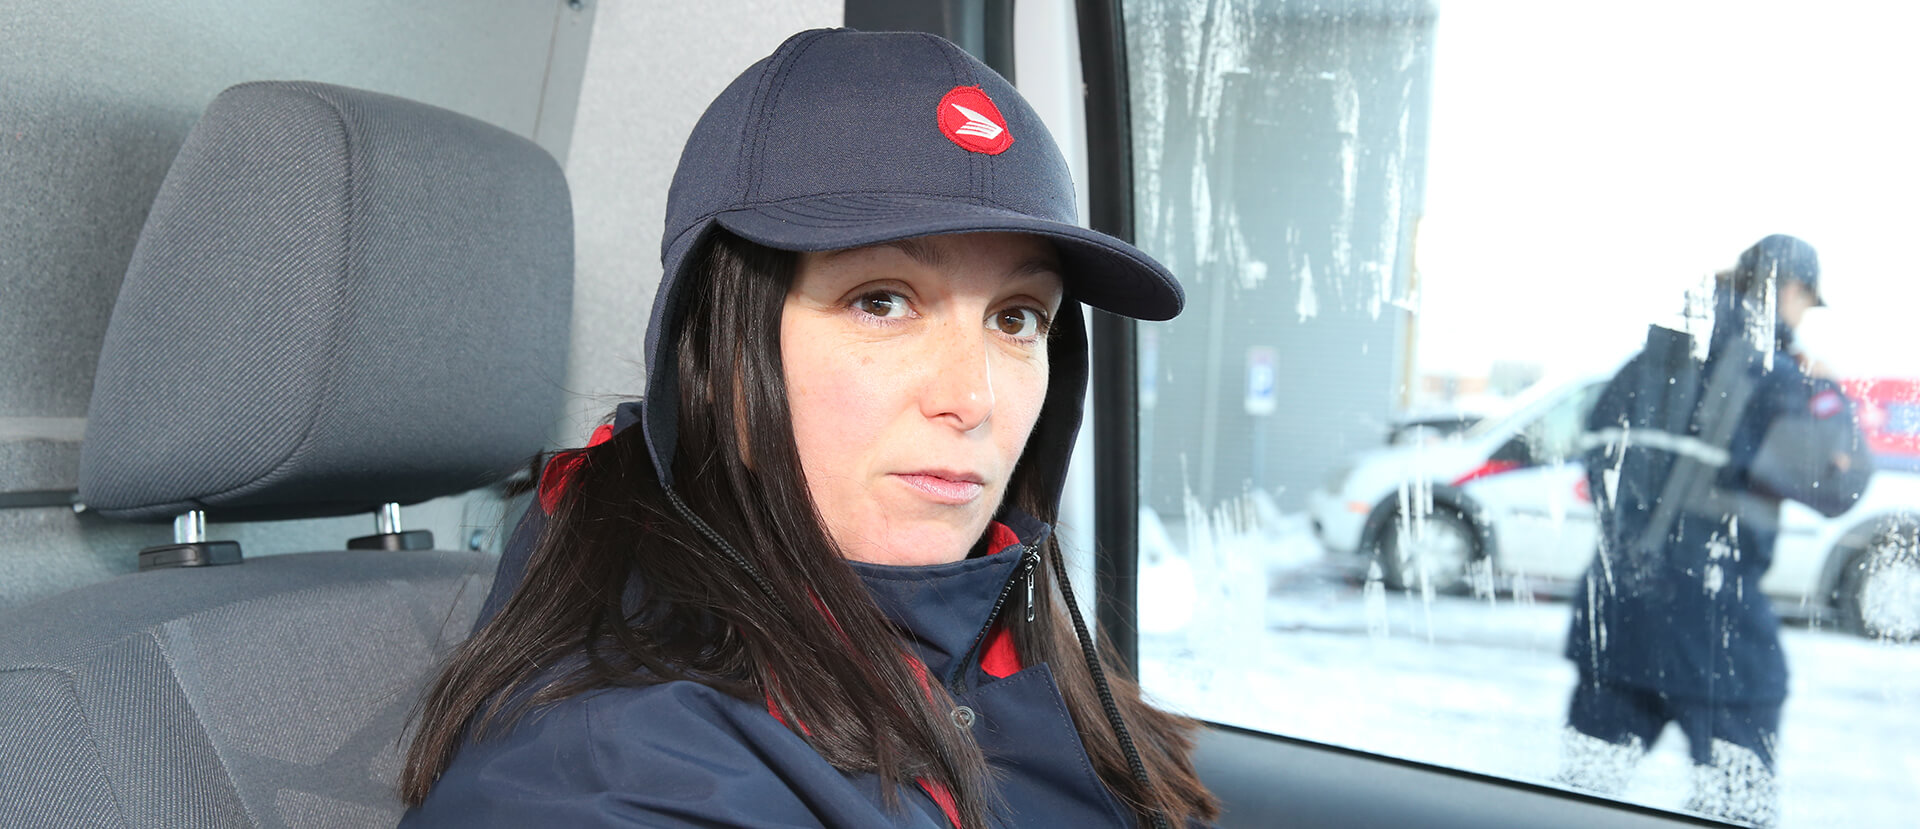 Female postal worker sitting inside of a postal truck, staring directly into the camera with a serious look on her face.